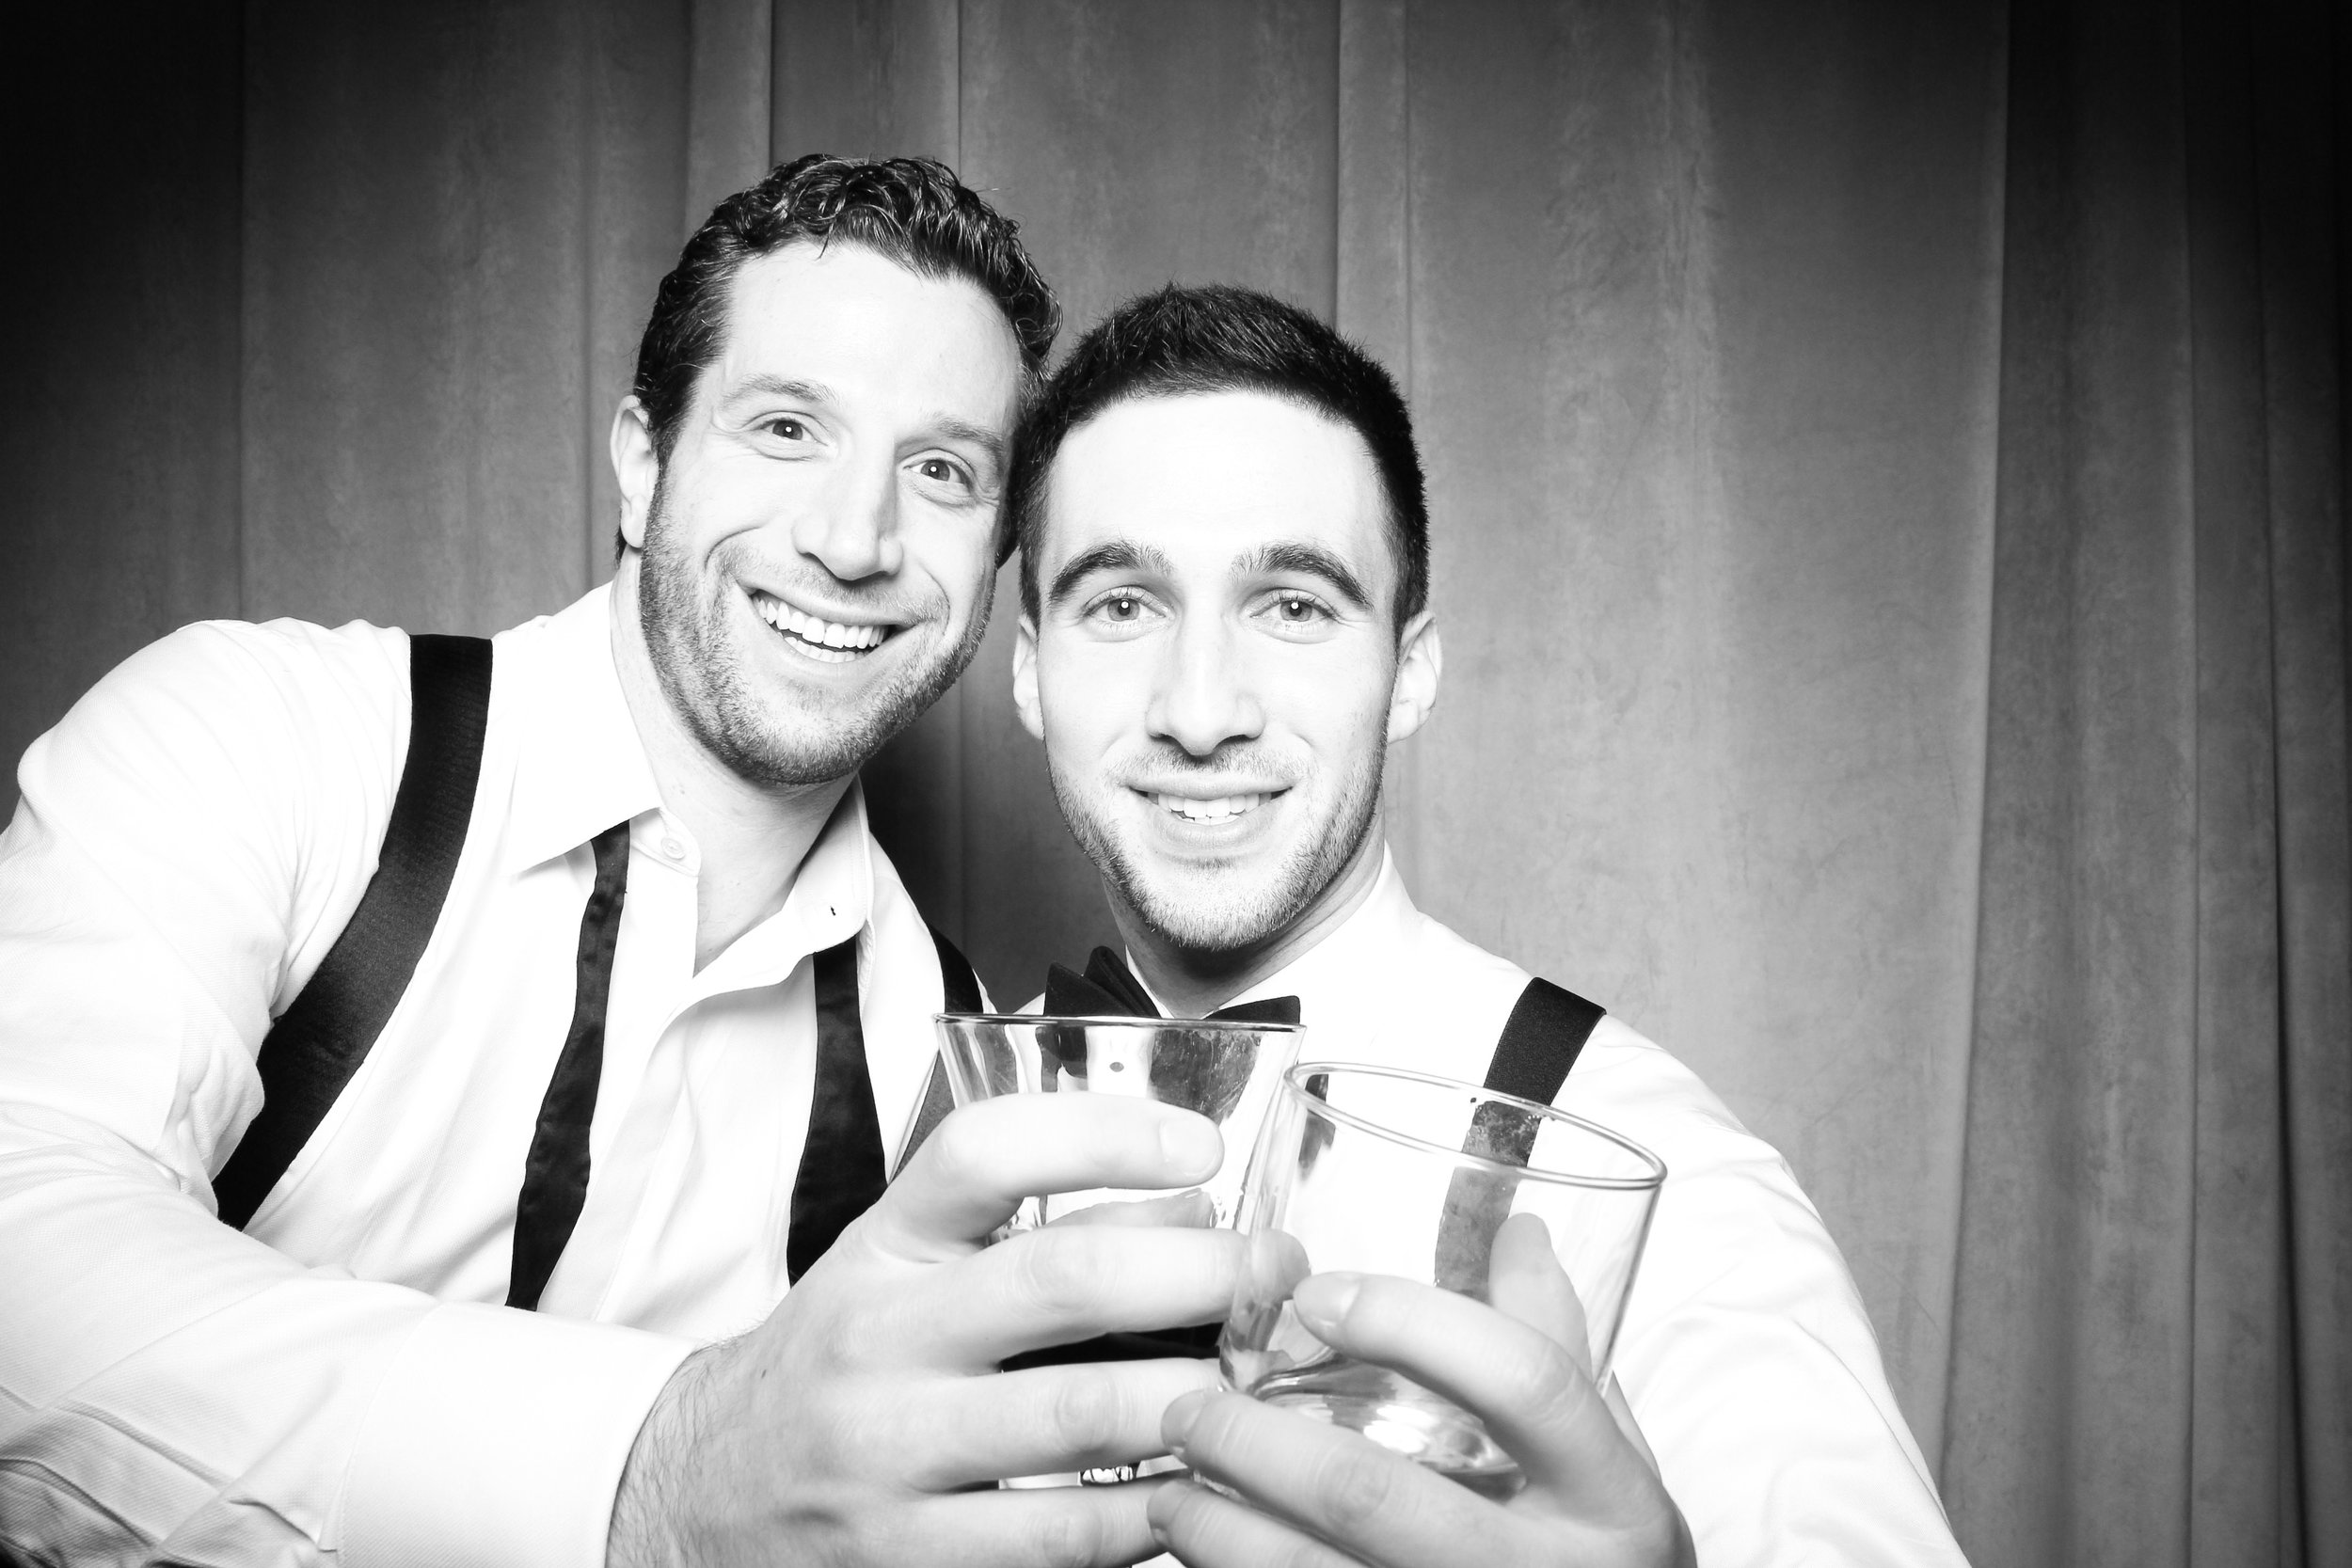 Chicago_Vintage_Wedding_Photobooth_Four_Seasons_33.jpg